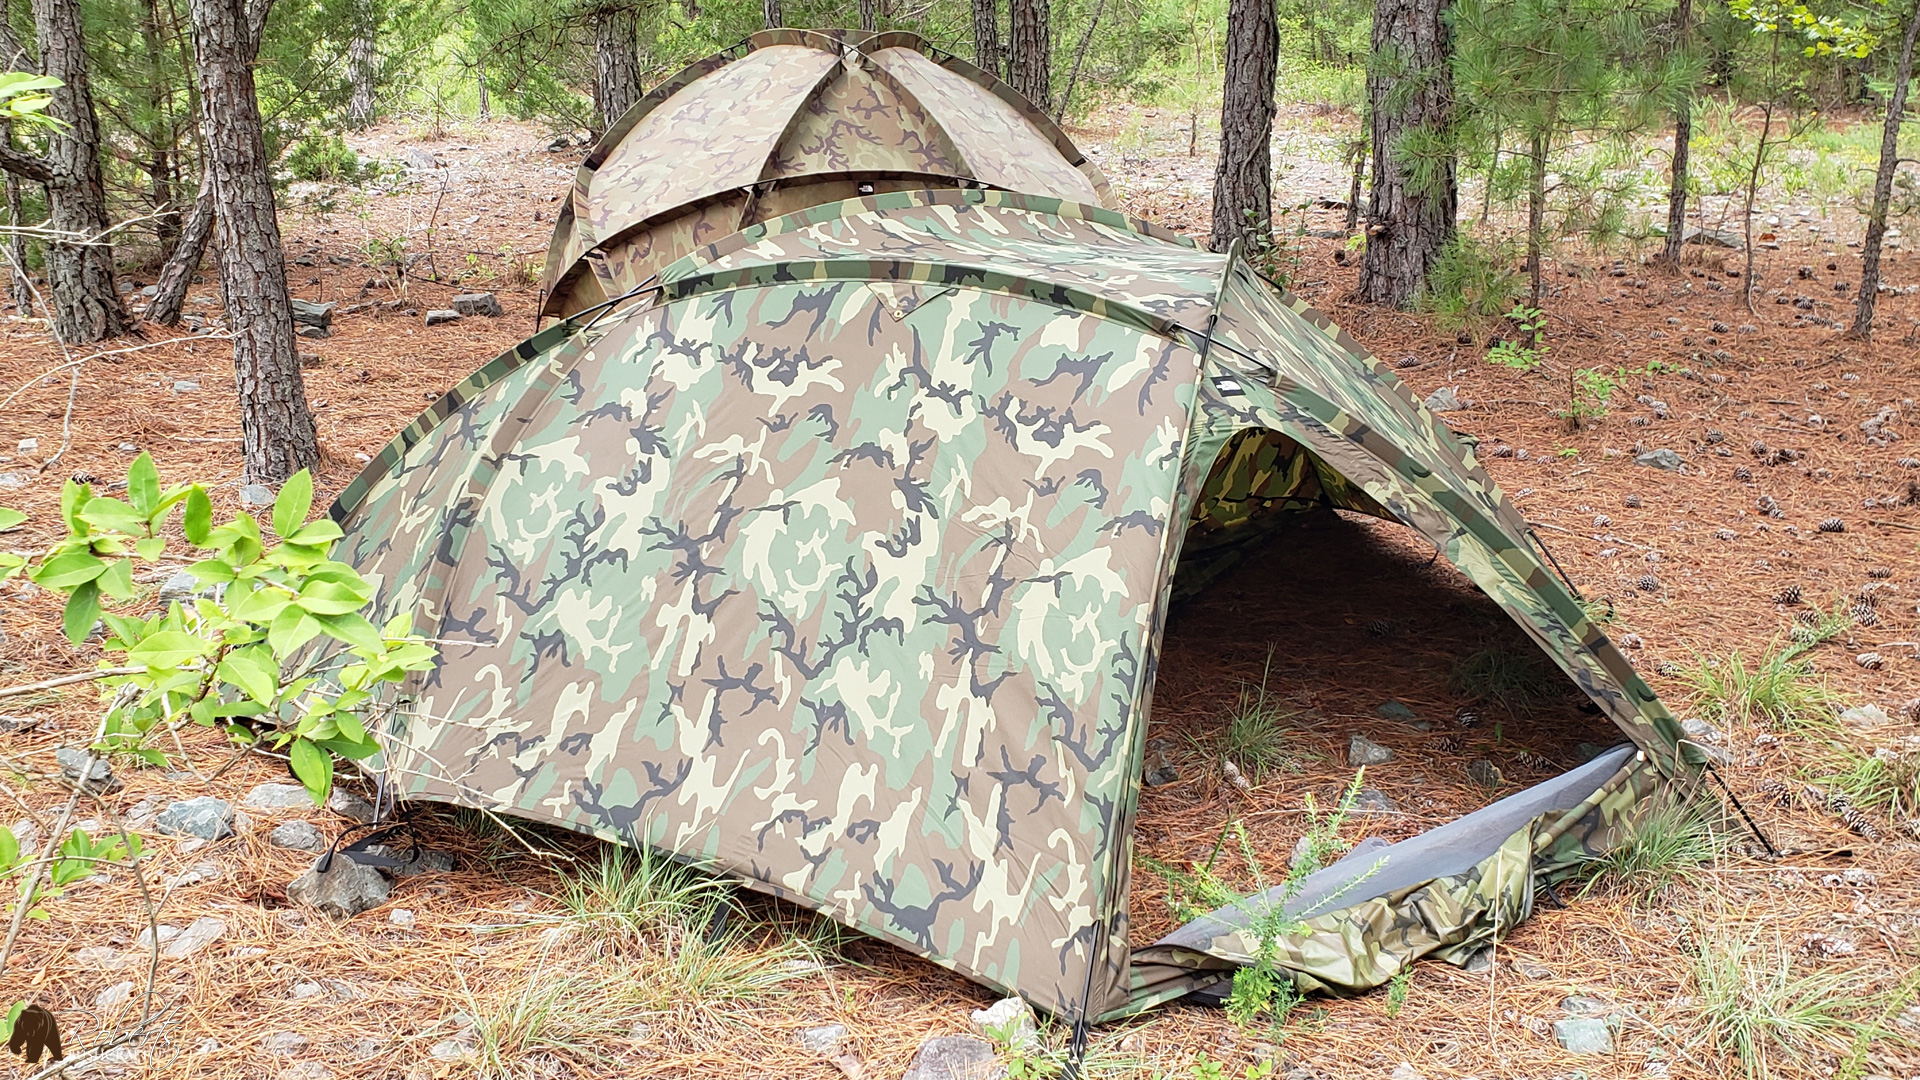 Extreme Cold Weather Tent ECWT ECWS North Face Tent woodland camouflage rainfly